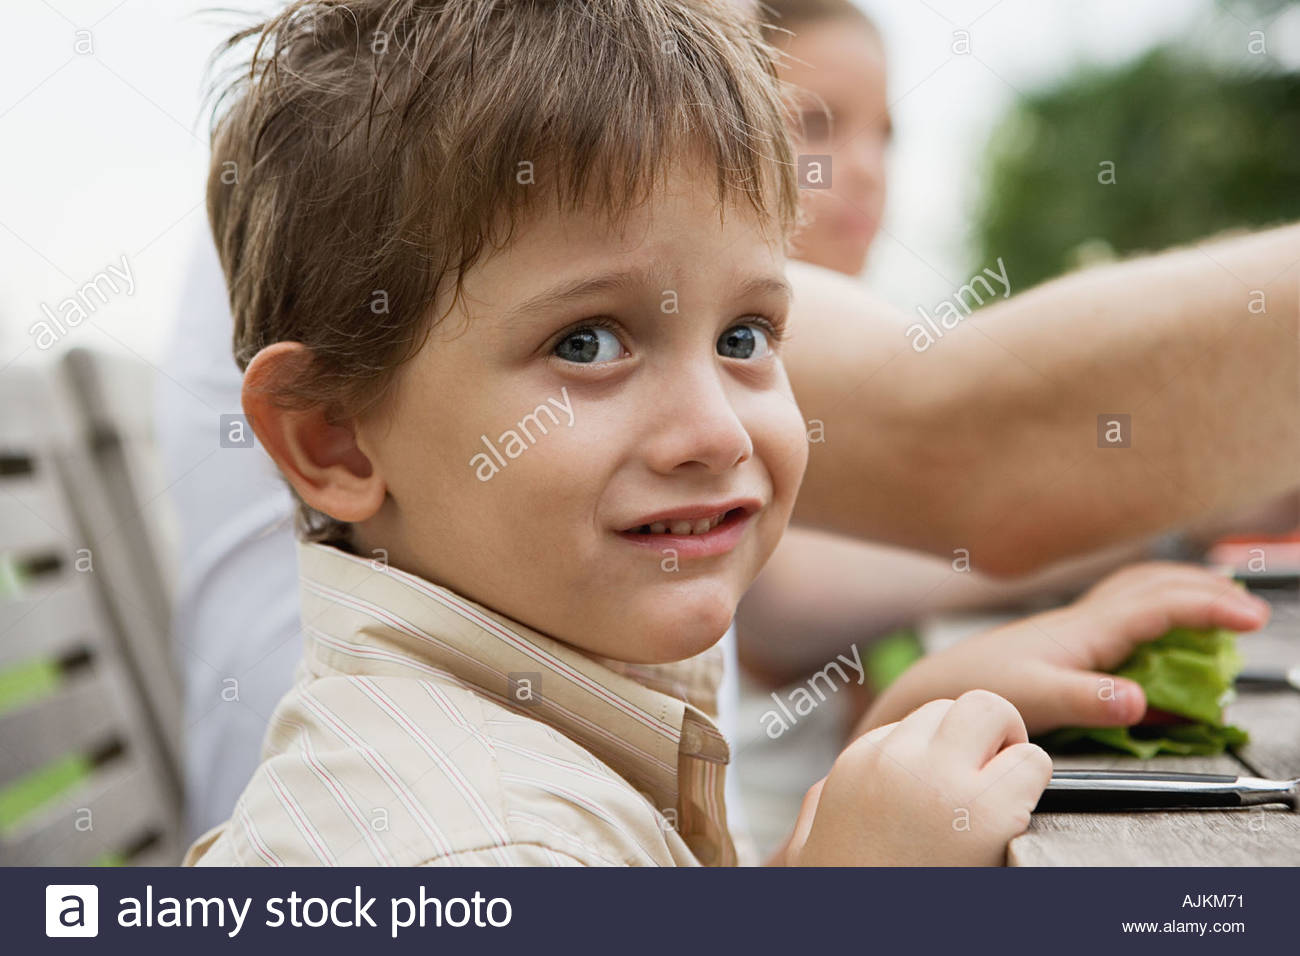 Boy making a face - Stock Image